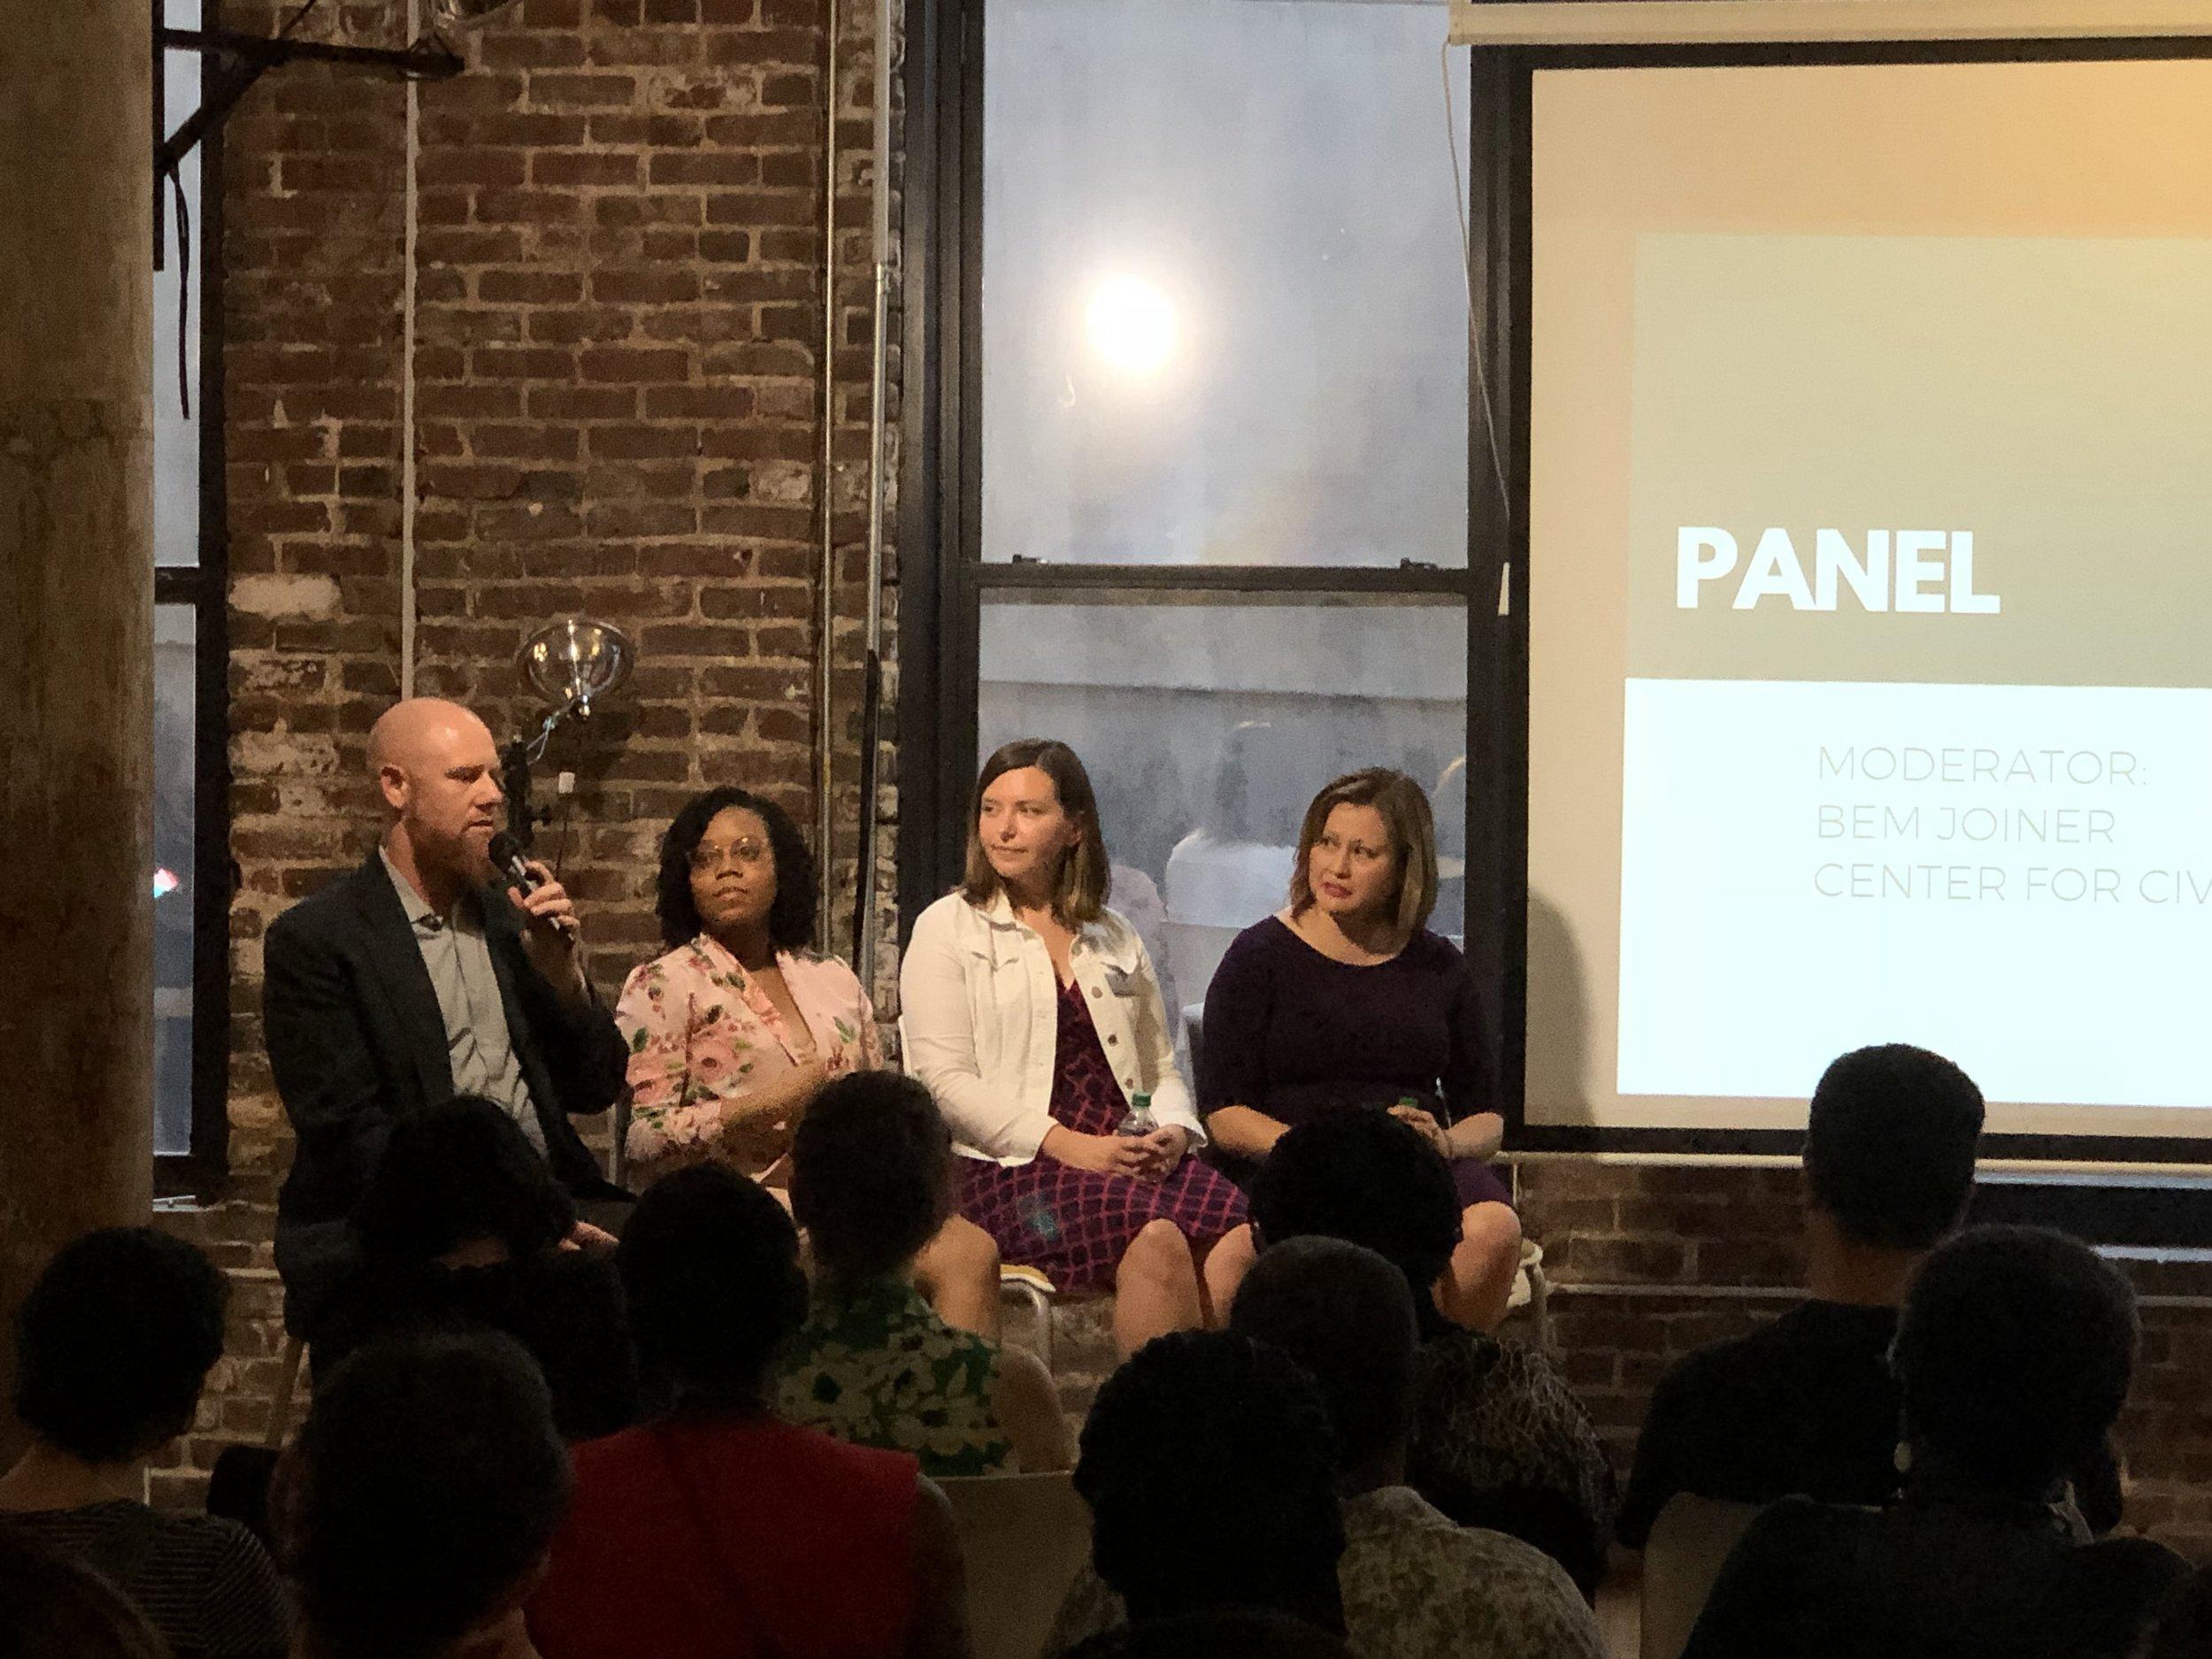 Panelists include from (left to right) Nathan Soldat and Whitney Fuller (Community Engagement Managers at Atlanta BeltLine), Audrey Leous (Project Manager, Planning and Urban Design at Central Atlanta Progress), and Casie Yoder (Casie Yoder Consulting and Former Chief Spokesperson for City of Decatur).